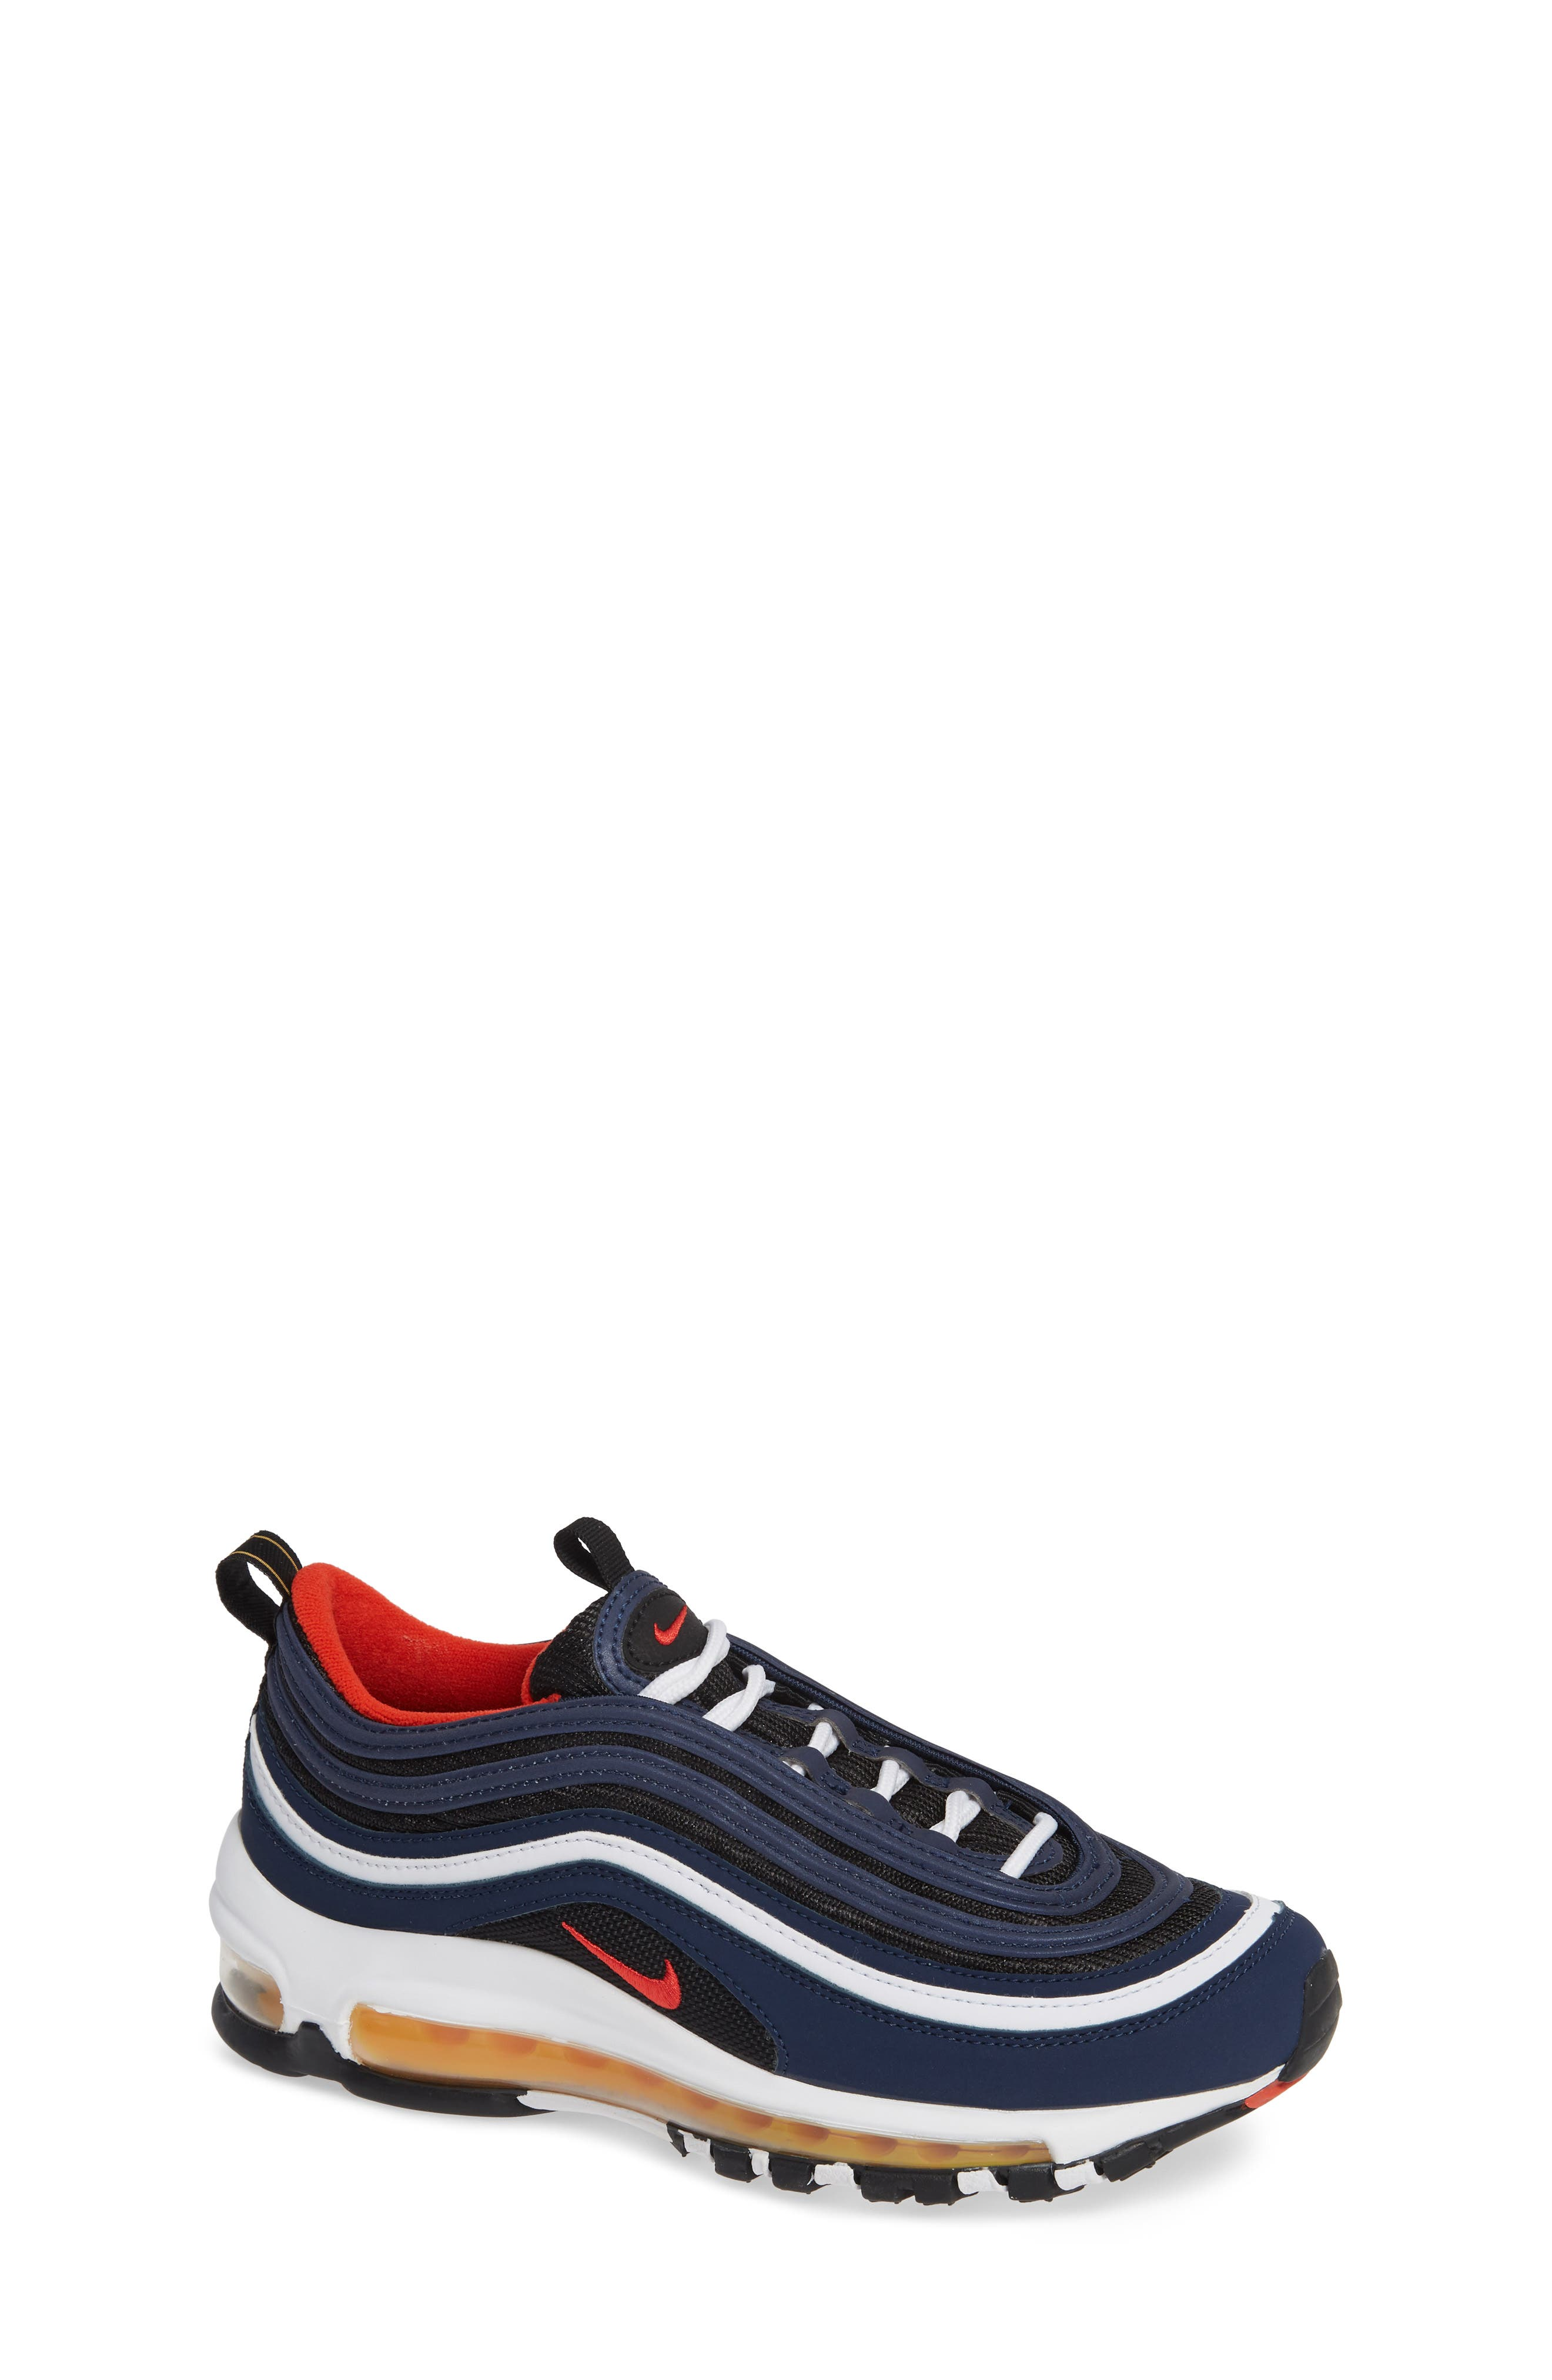 Air Max 97 Sneaker,                         Main,                         color, MIDNIGHT NAVY/RED BLACK WHITE